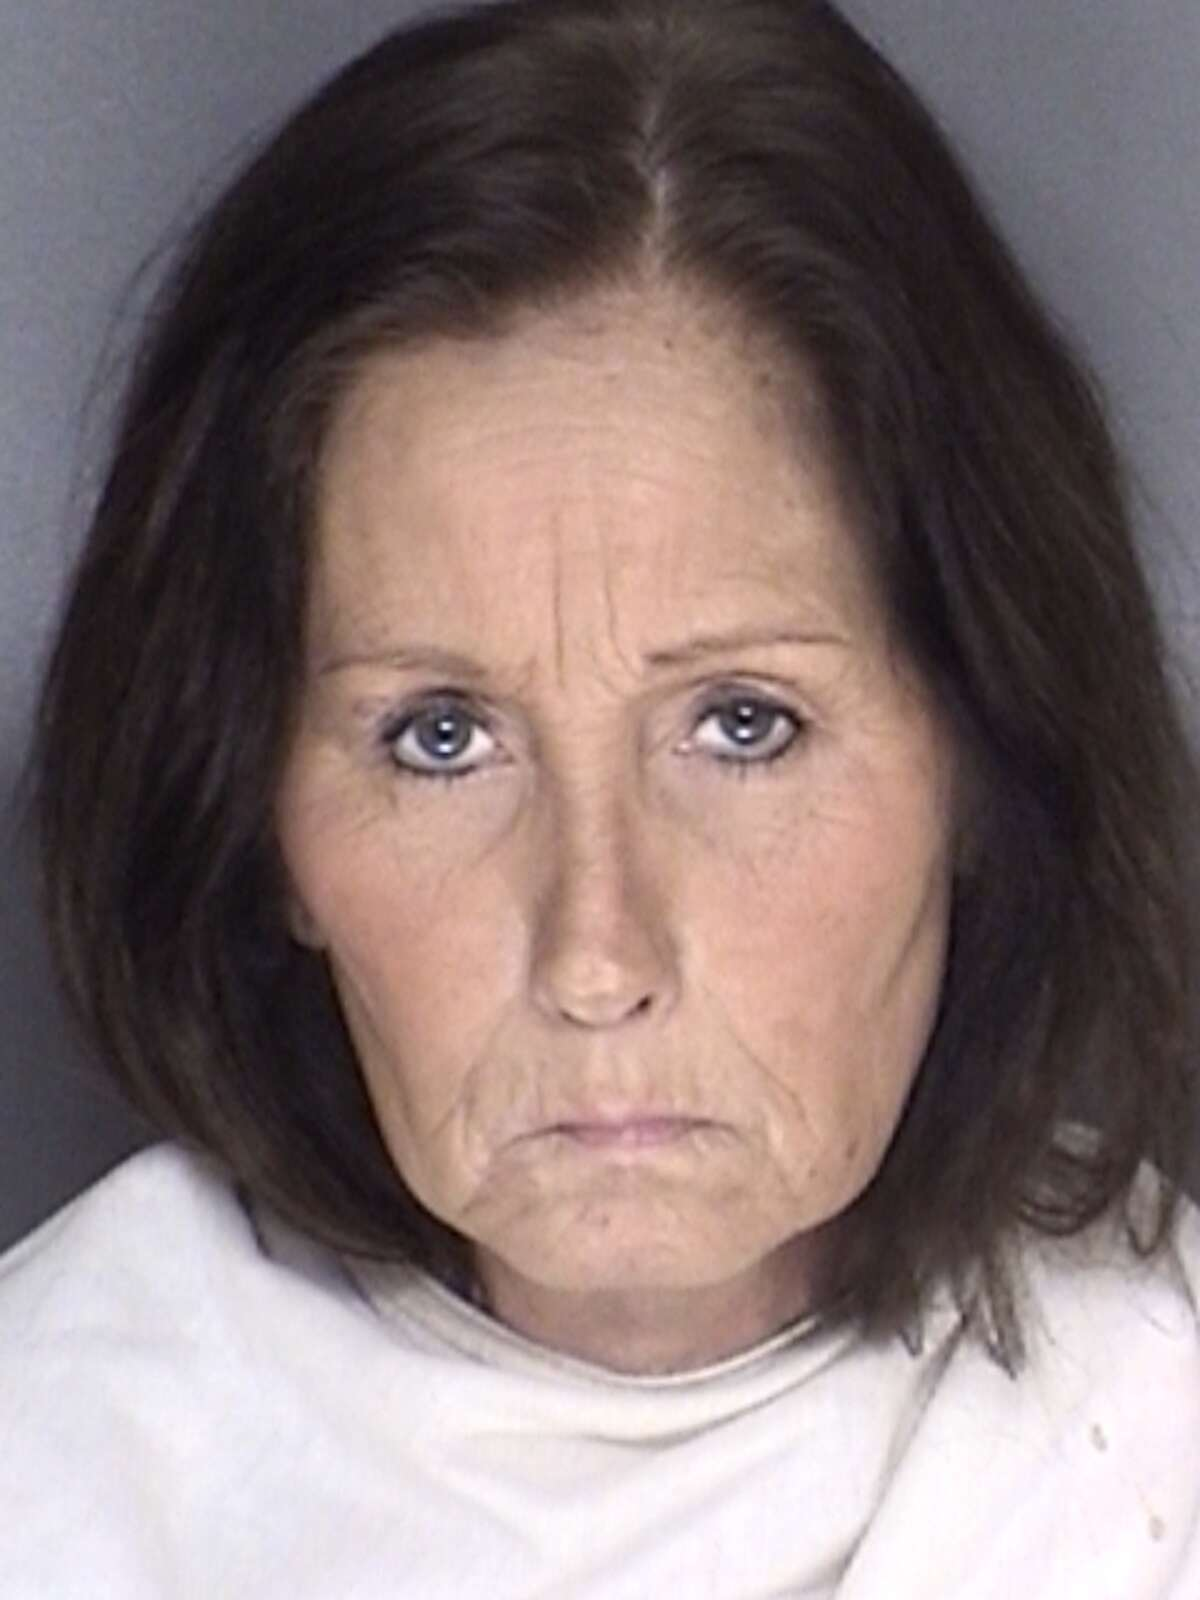 The suspect, 55-year-old Sandra Louise Garner of Maypearl, Texas, was jailed Wednesday on a charge of murder. Her bond was set at $2 million.